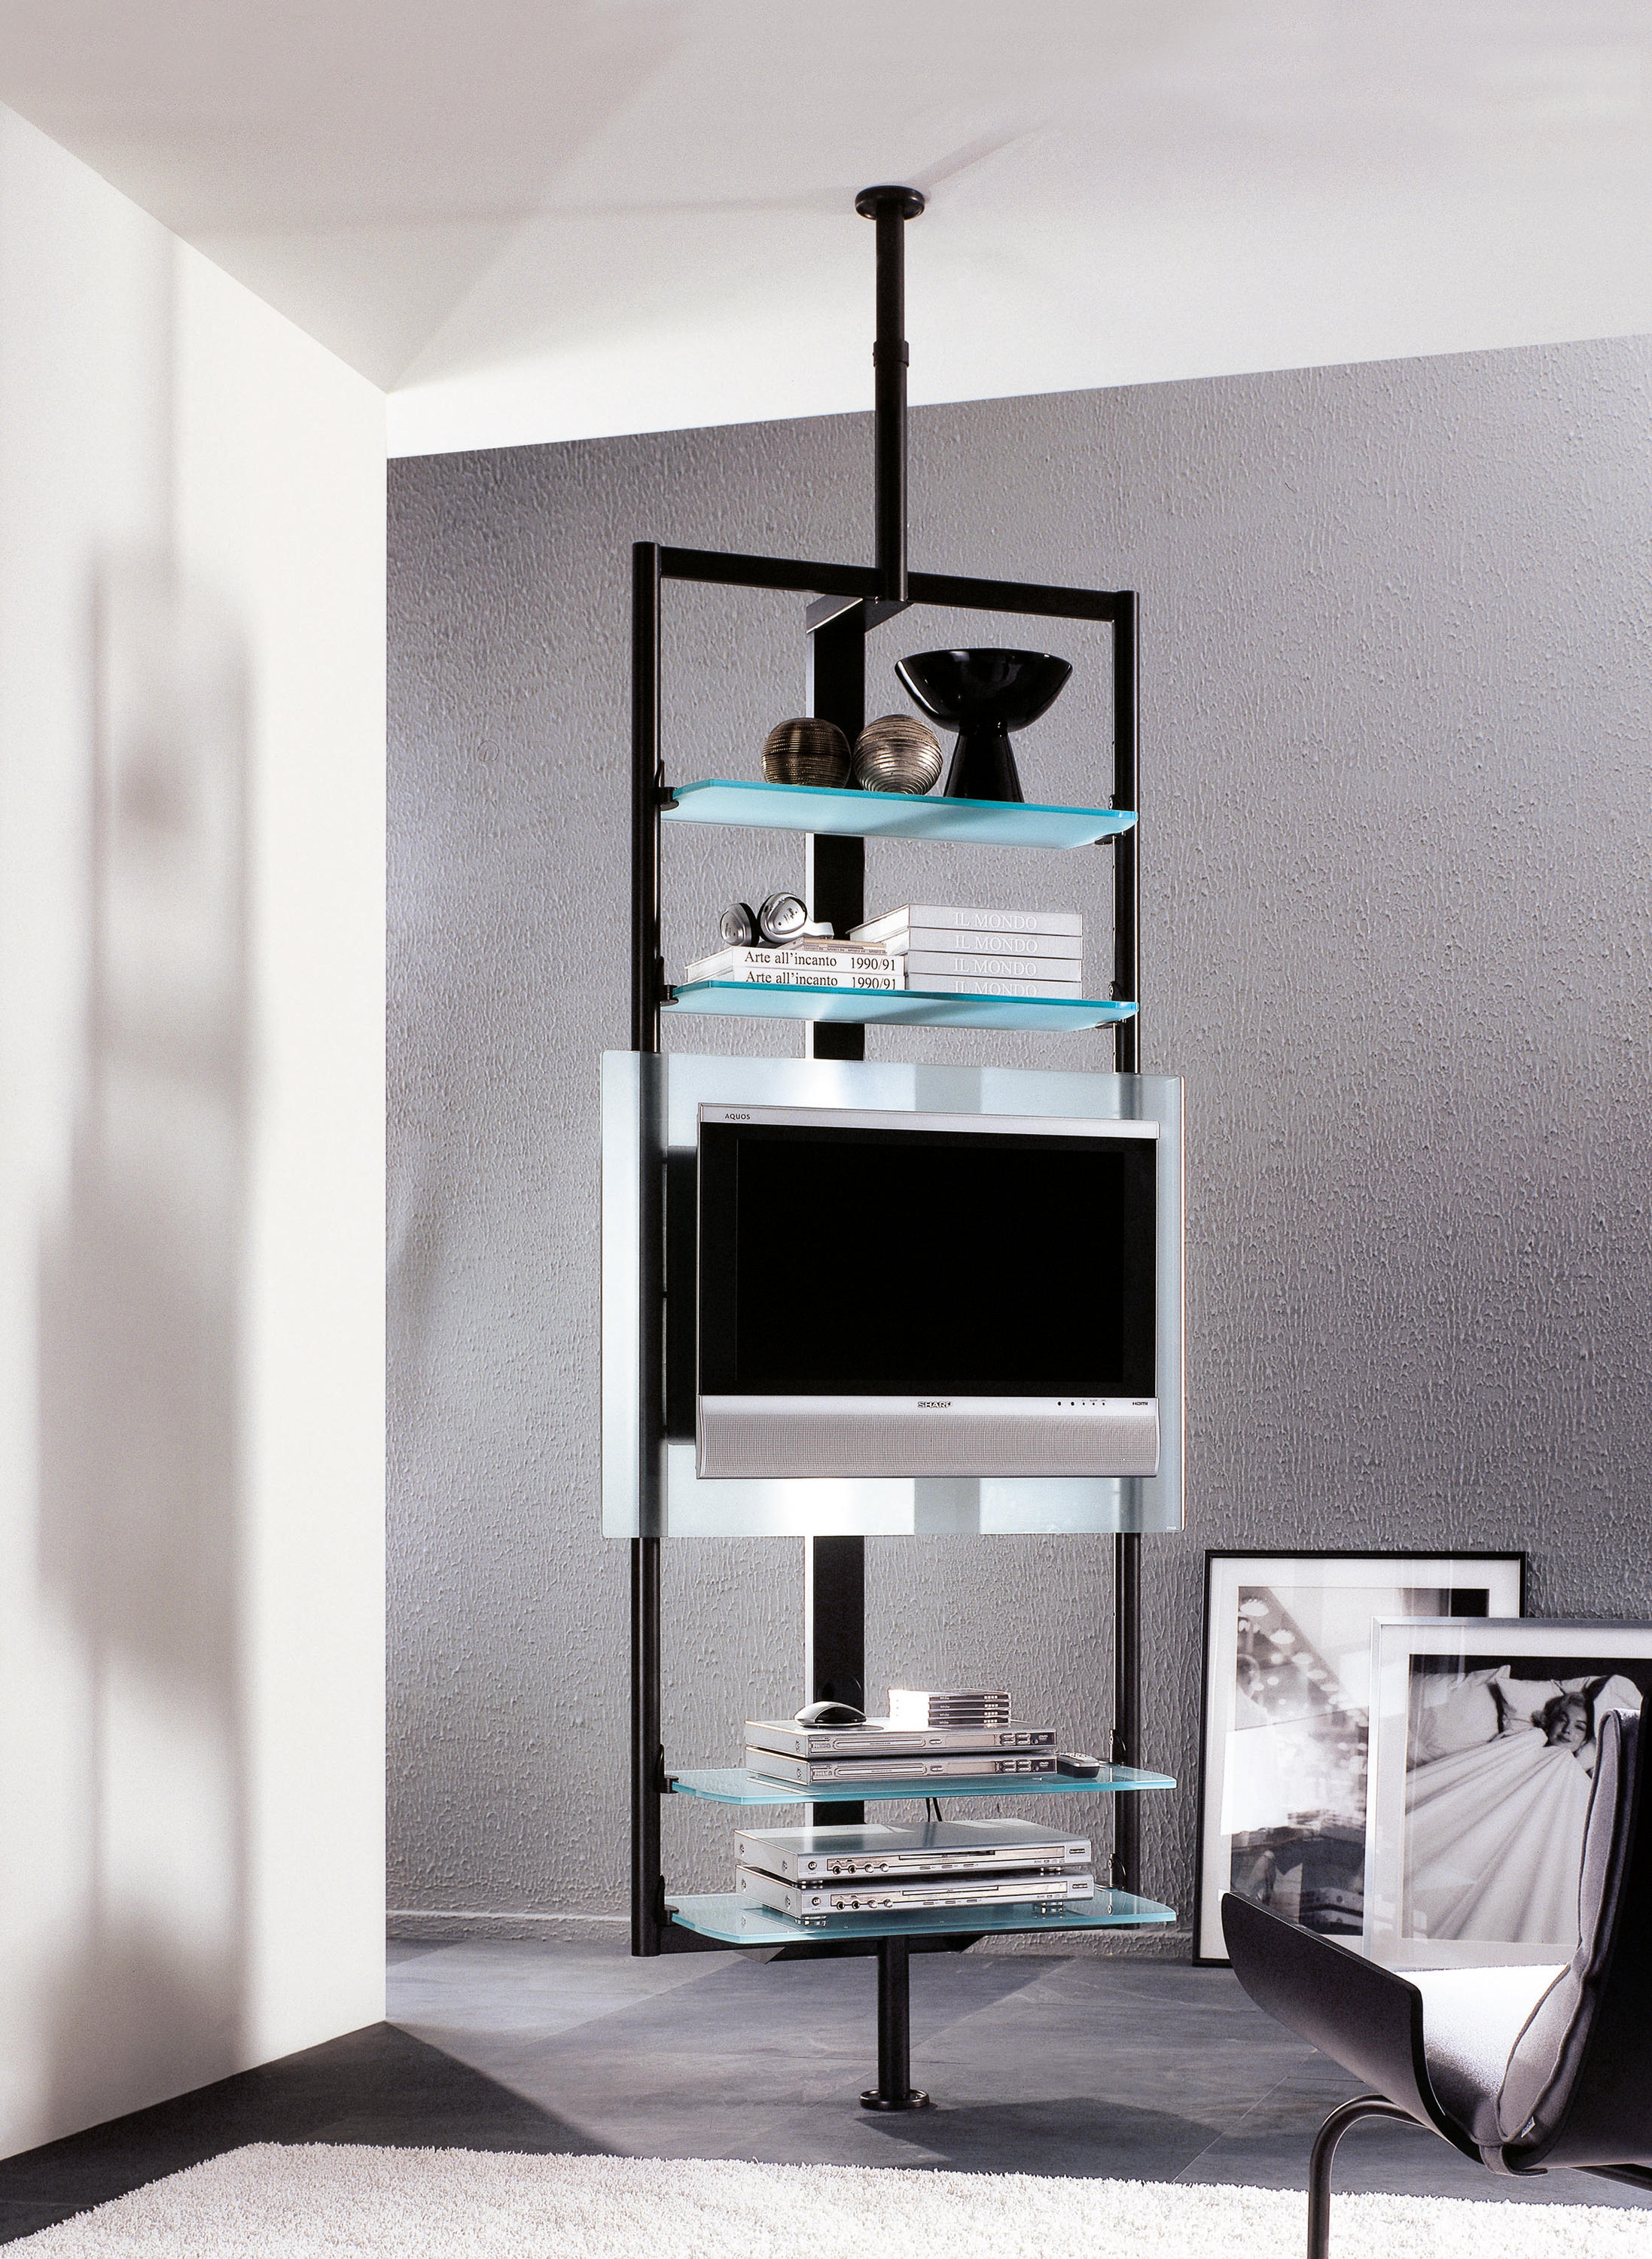 Porada Porta Tv Ubiqua.Ubiqua Girevole Designer Furniture Architonic